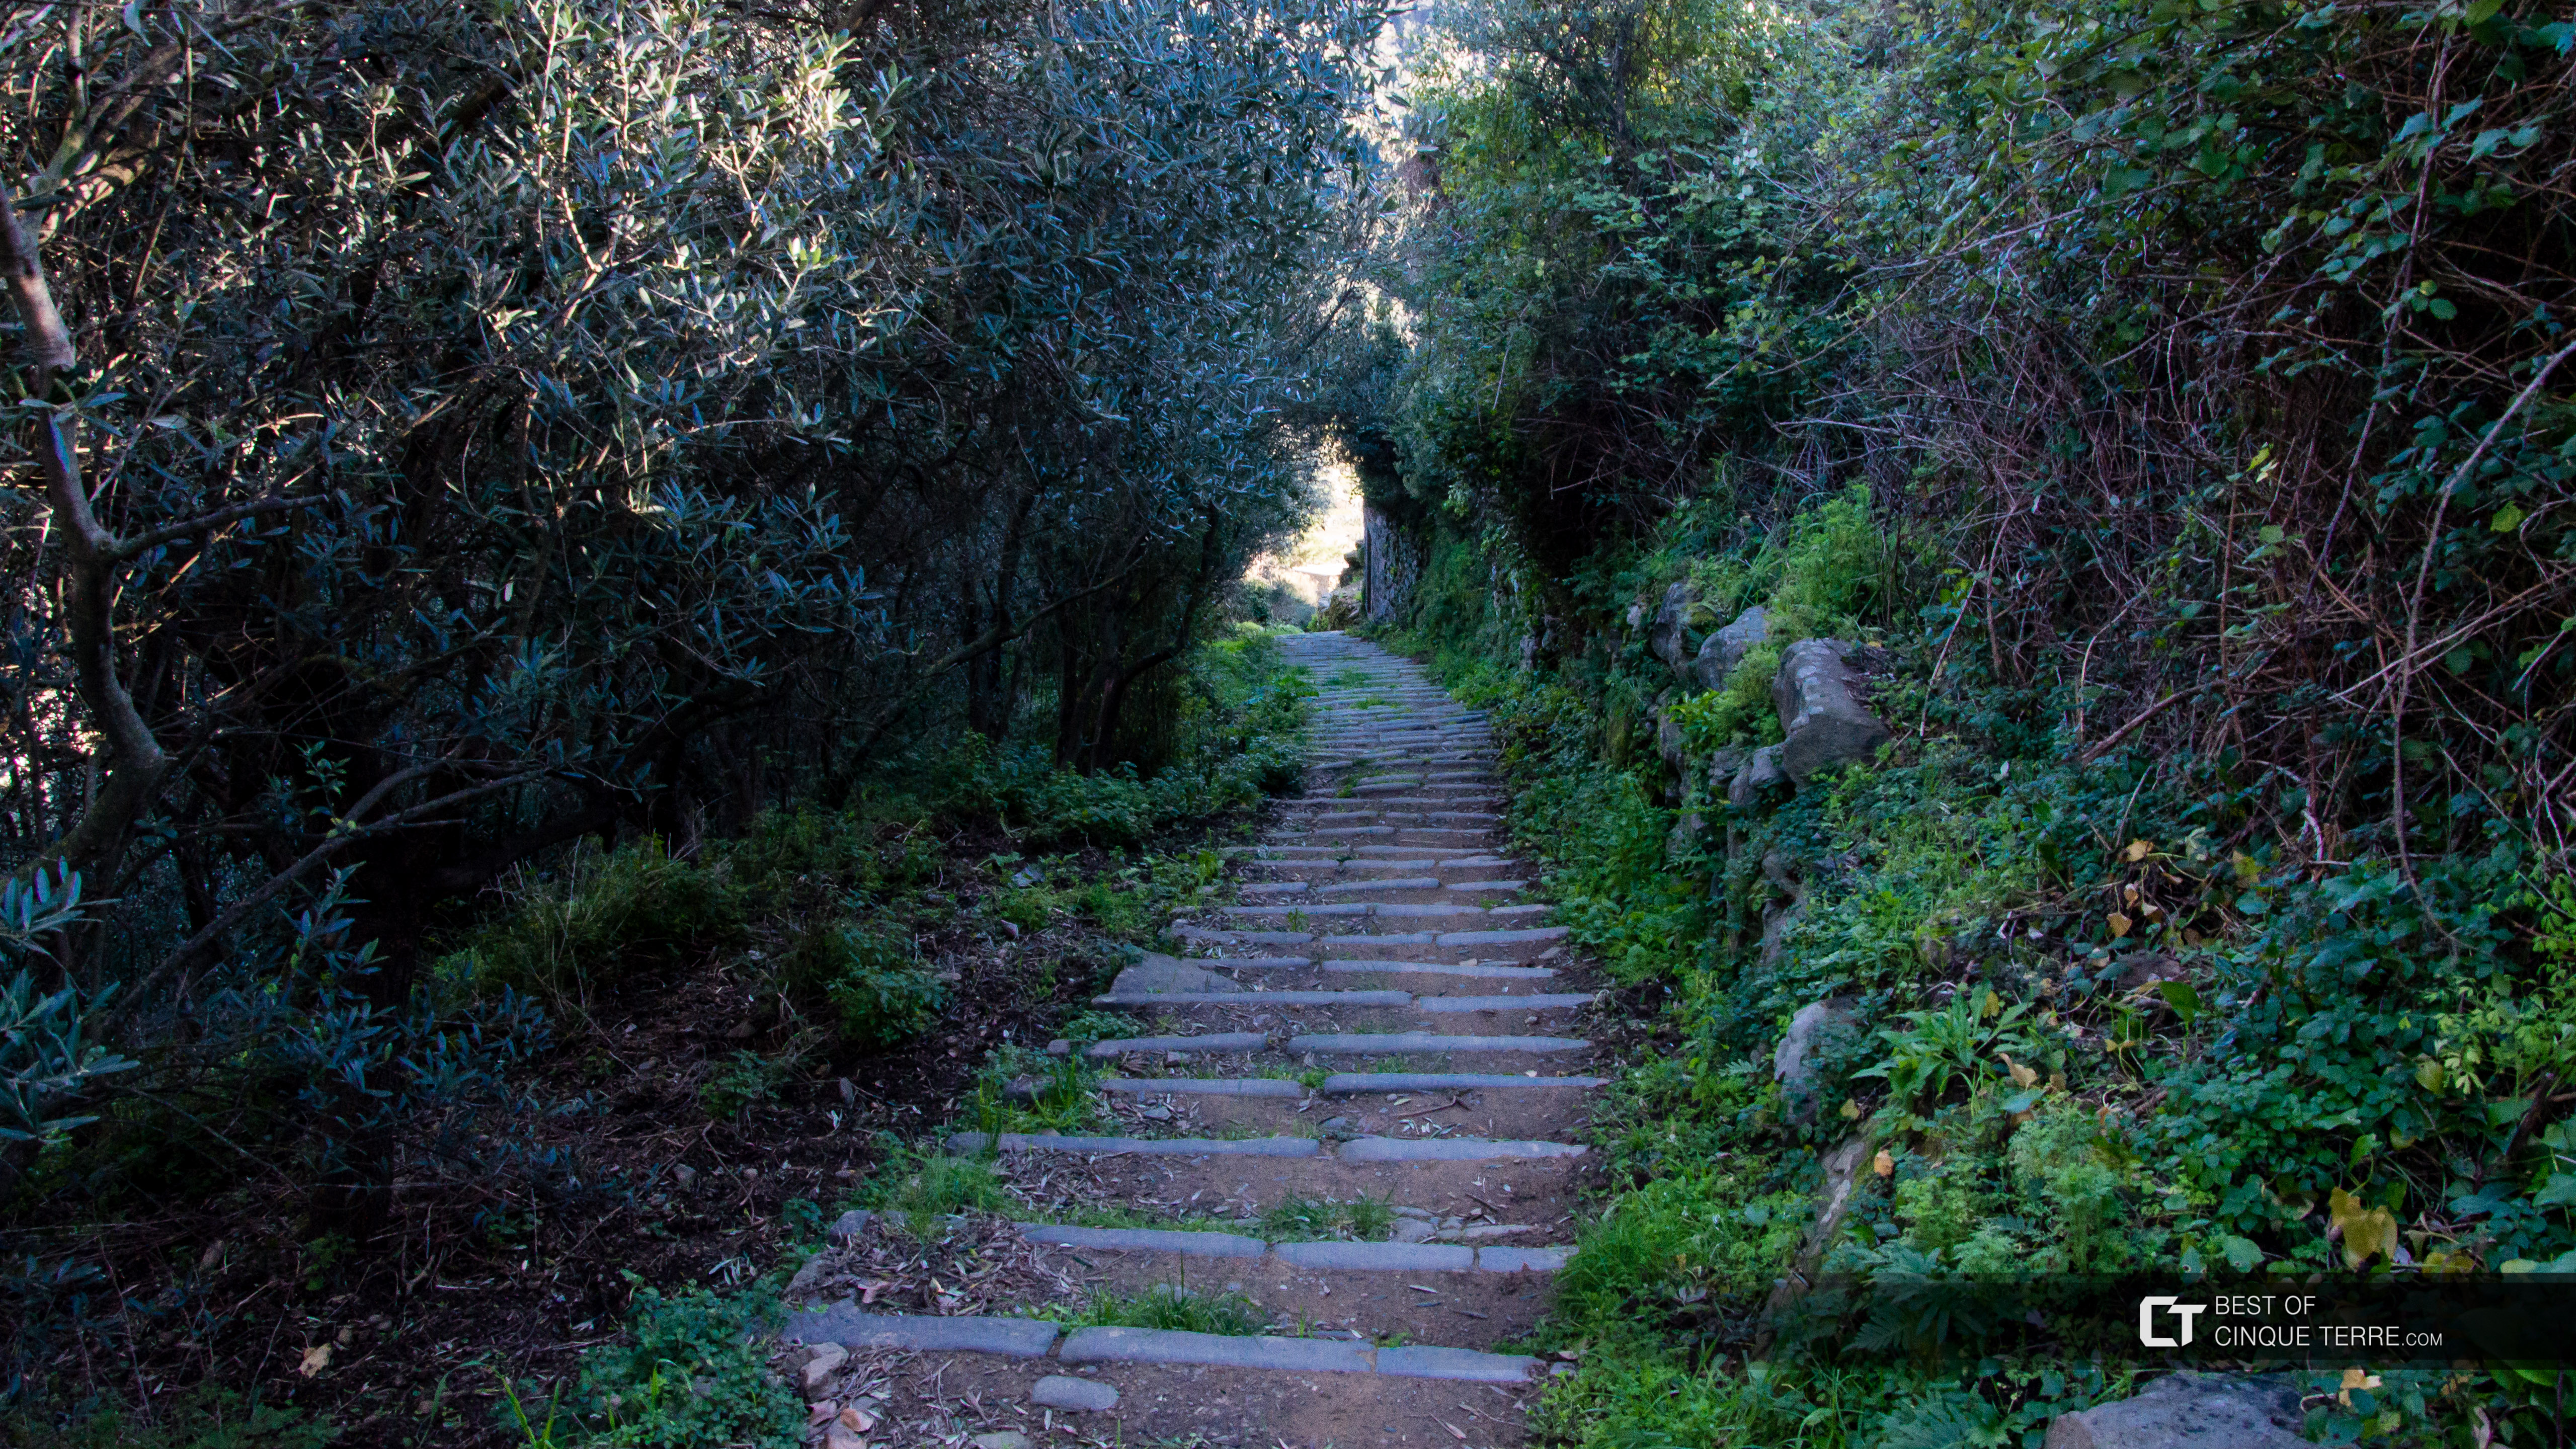 Descent from Volastra to Manarola (1200 steps), Trails, Cinque Terre, Italy